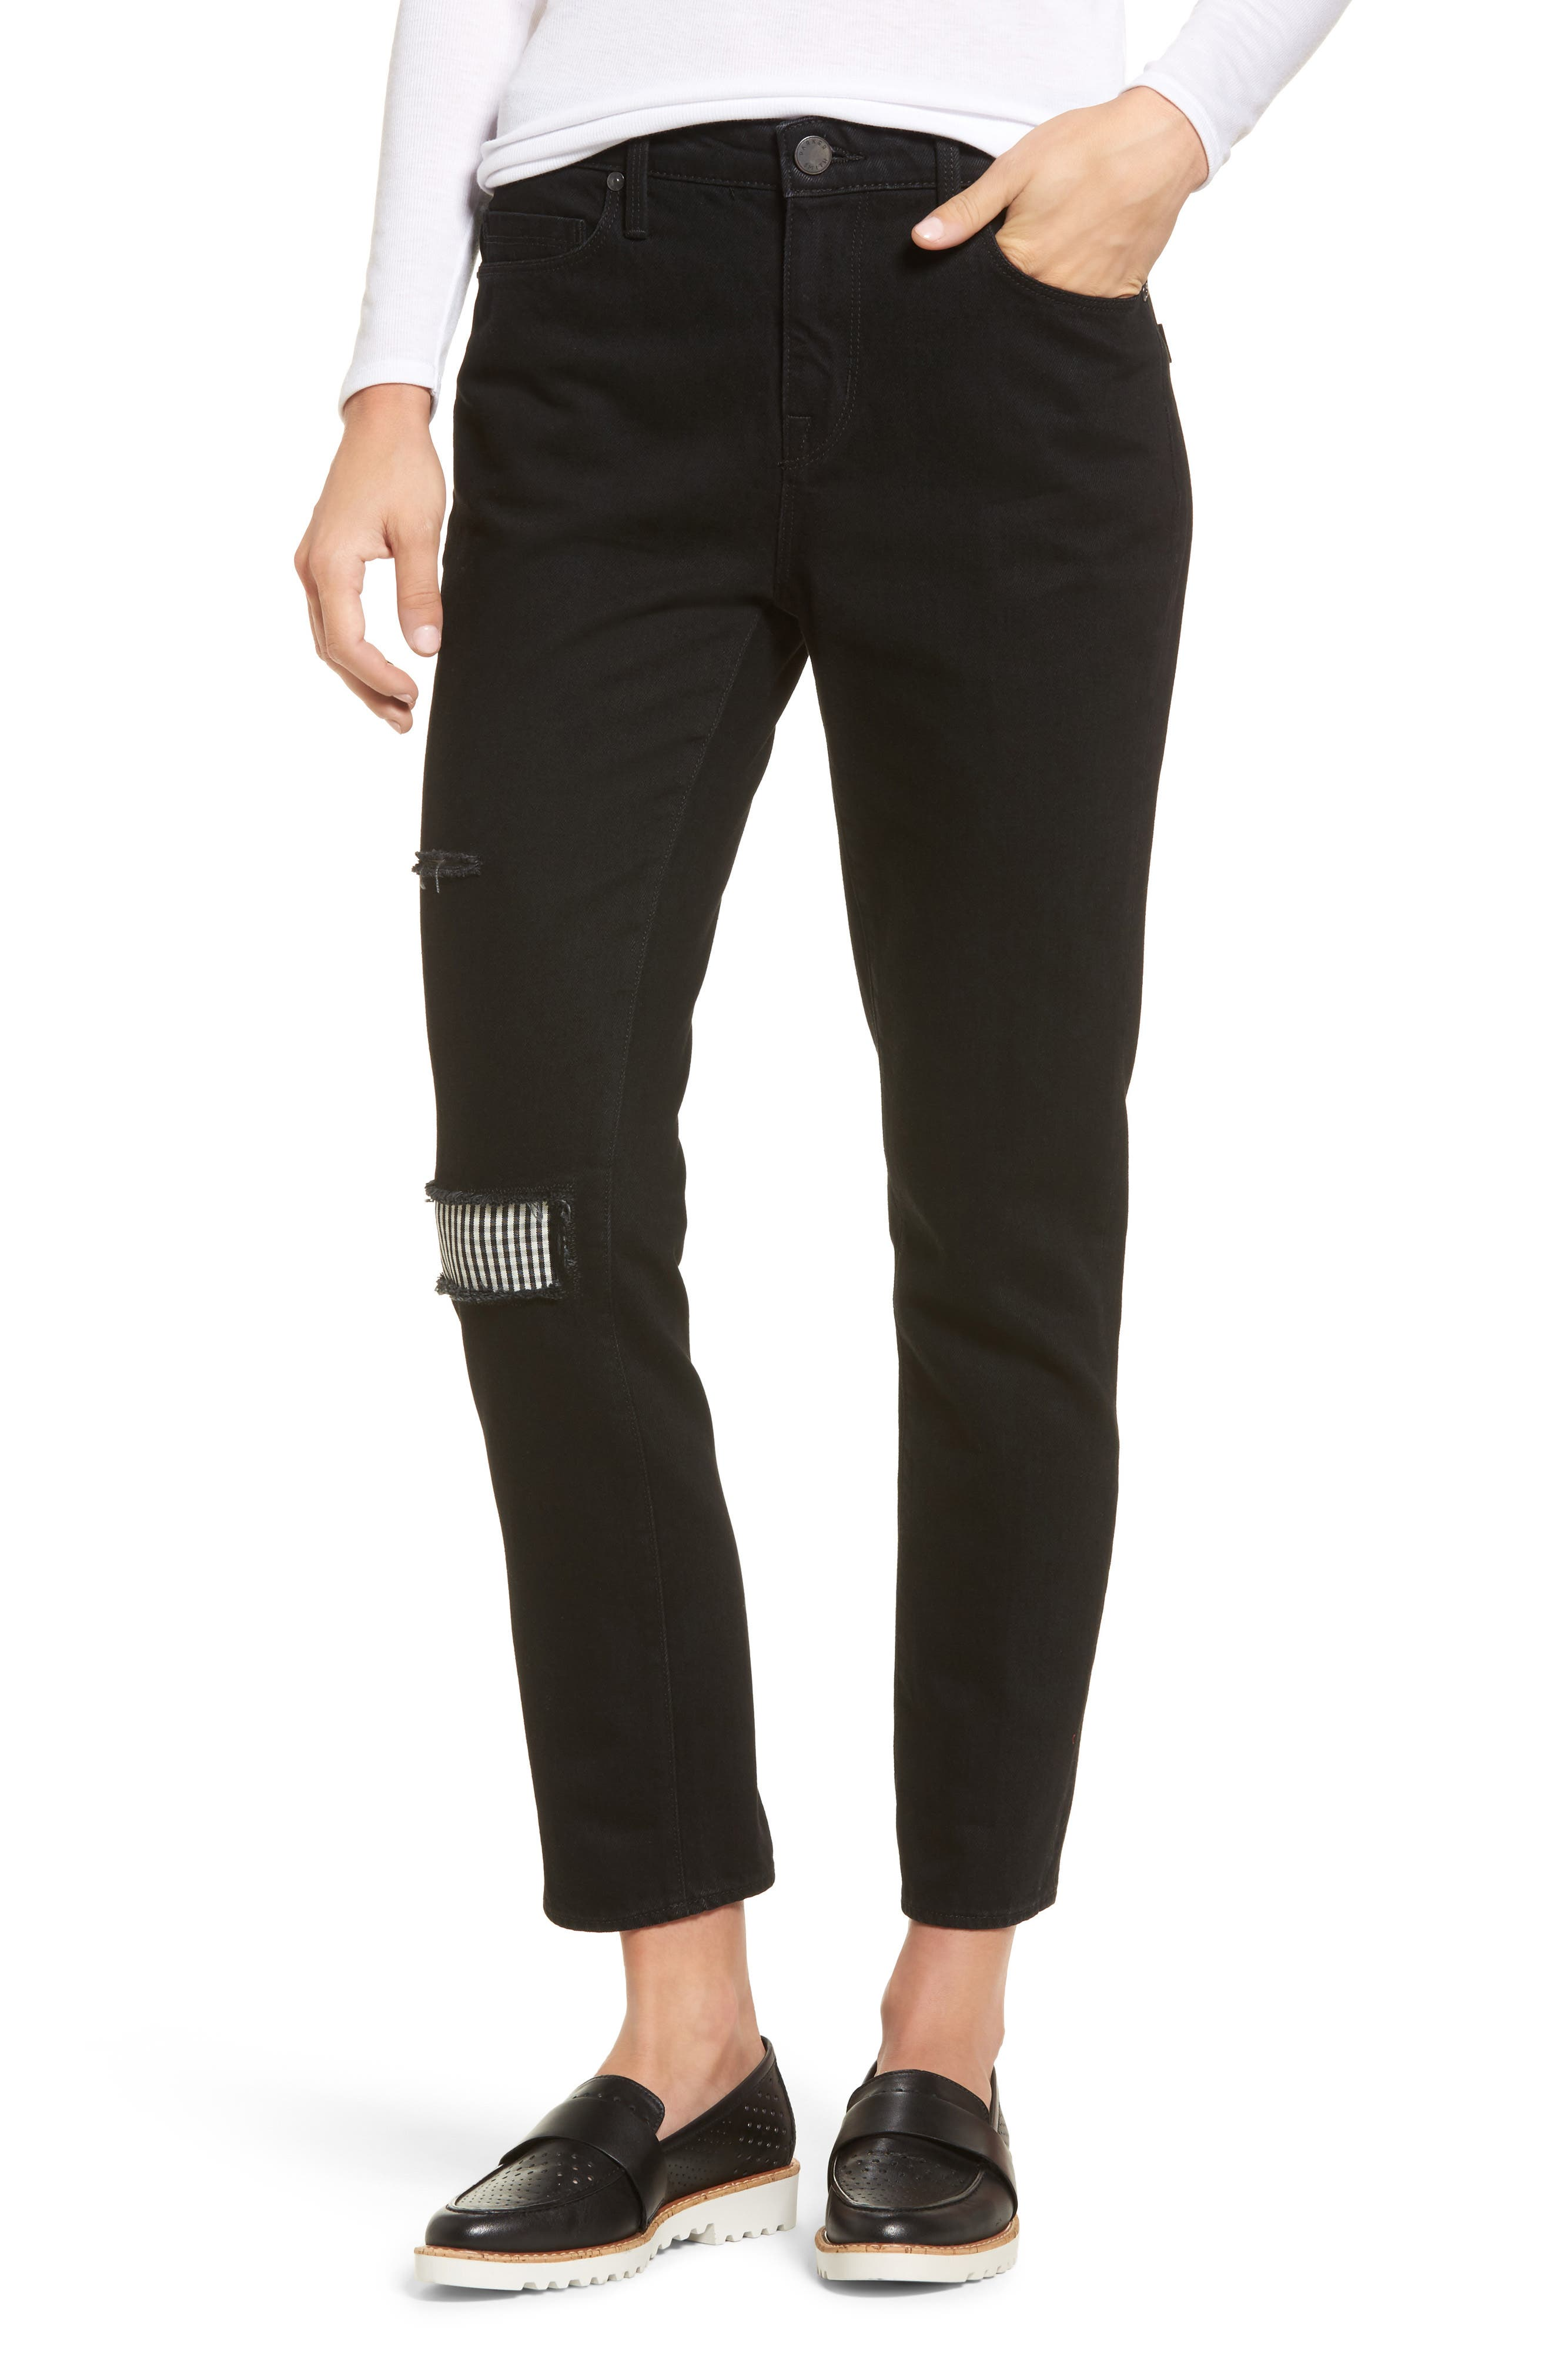 Alternate Image 1 Selected - PARKER SMITH Anti-Fit Ankle Straight Jeans (Black Magic)